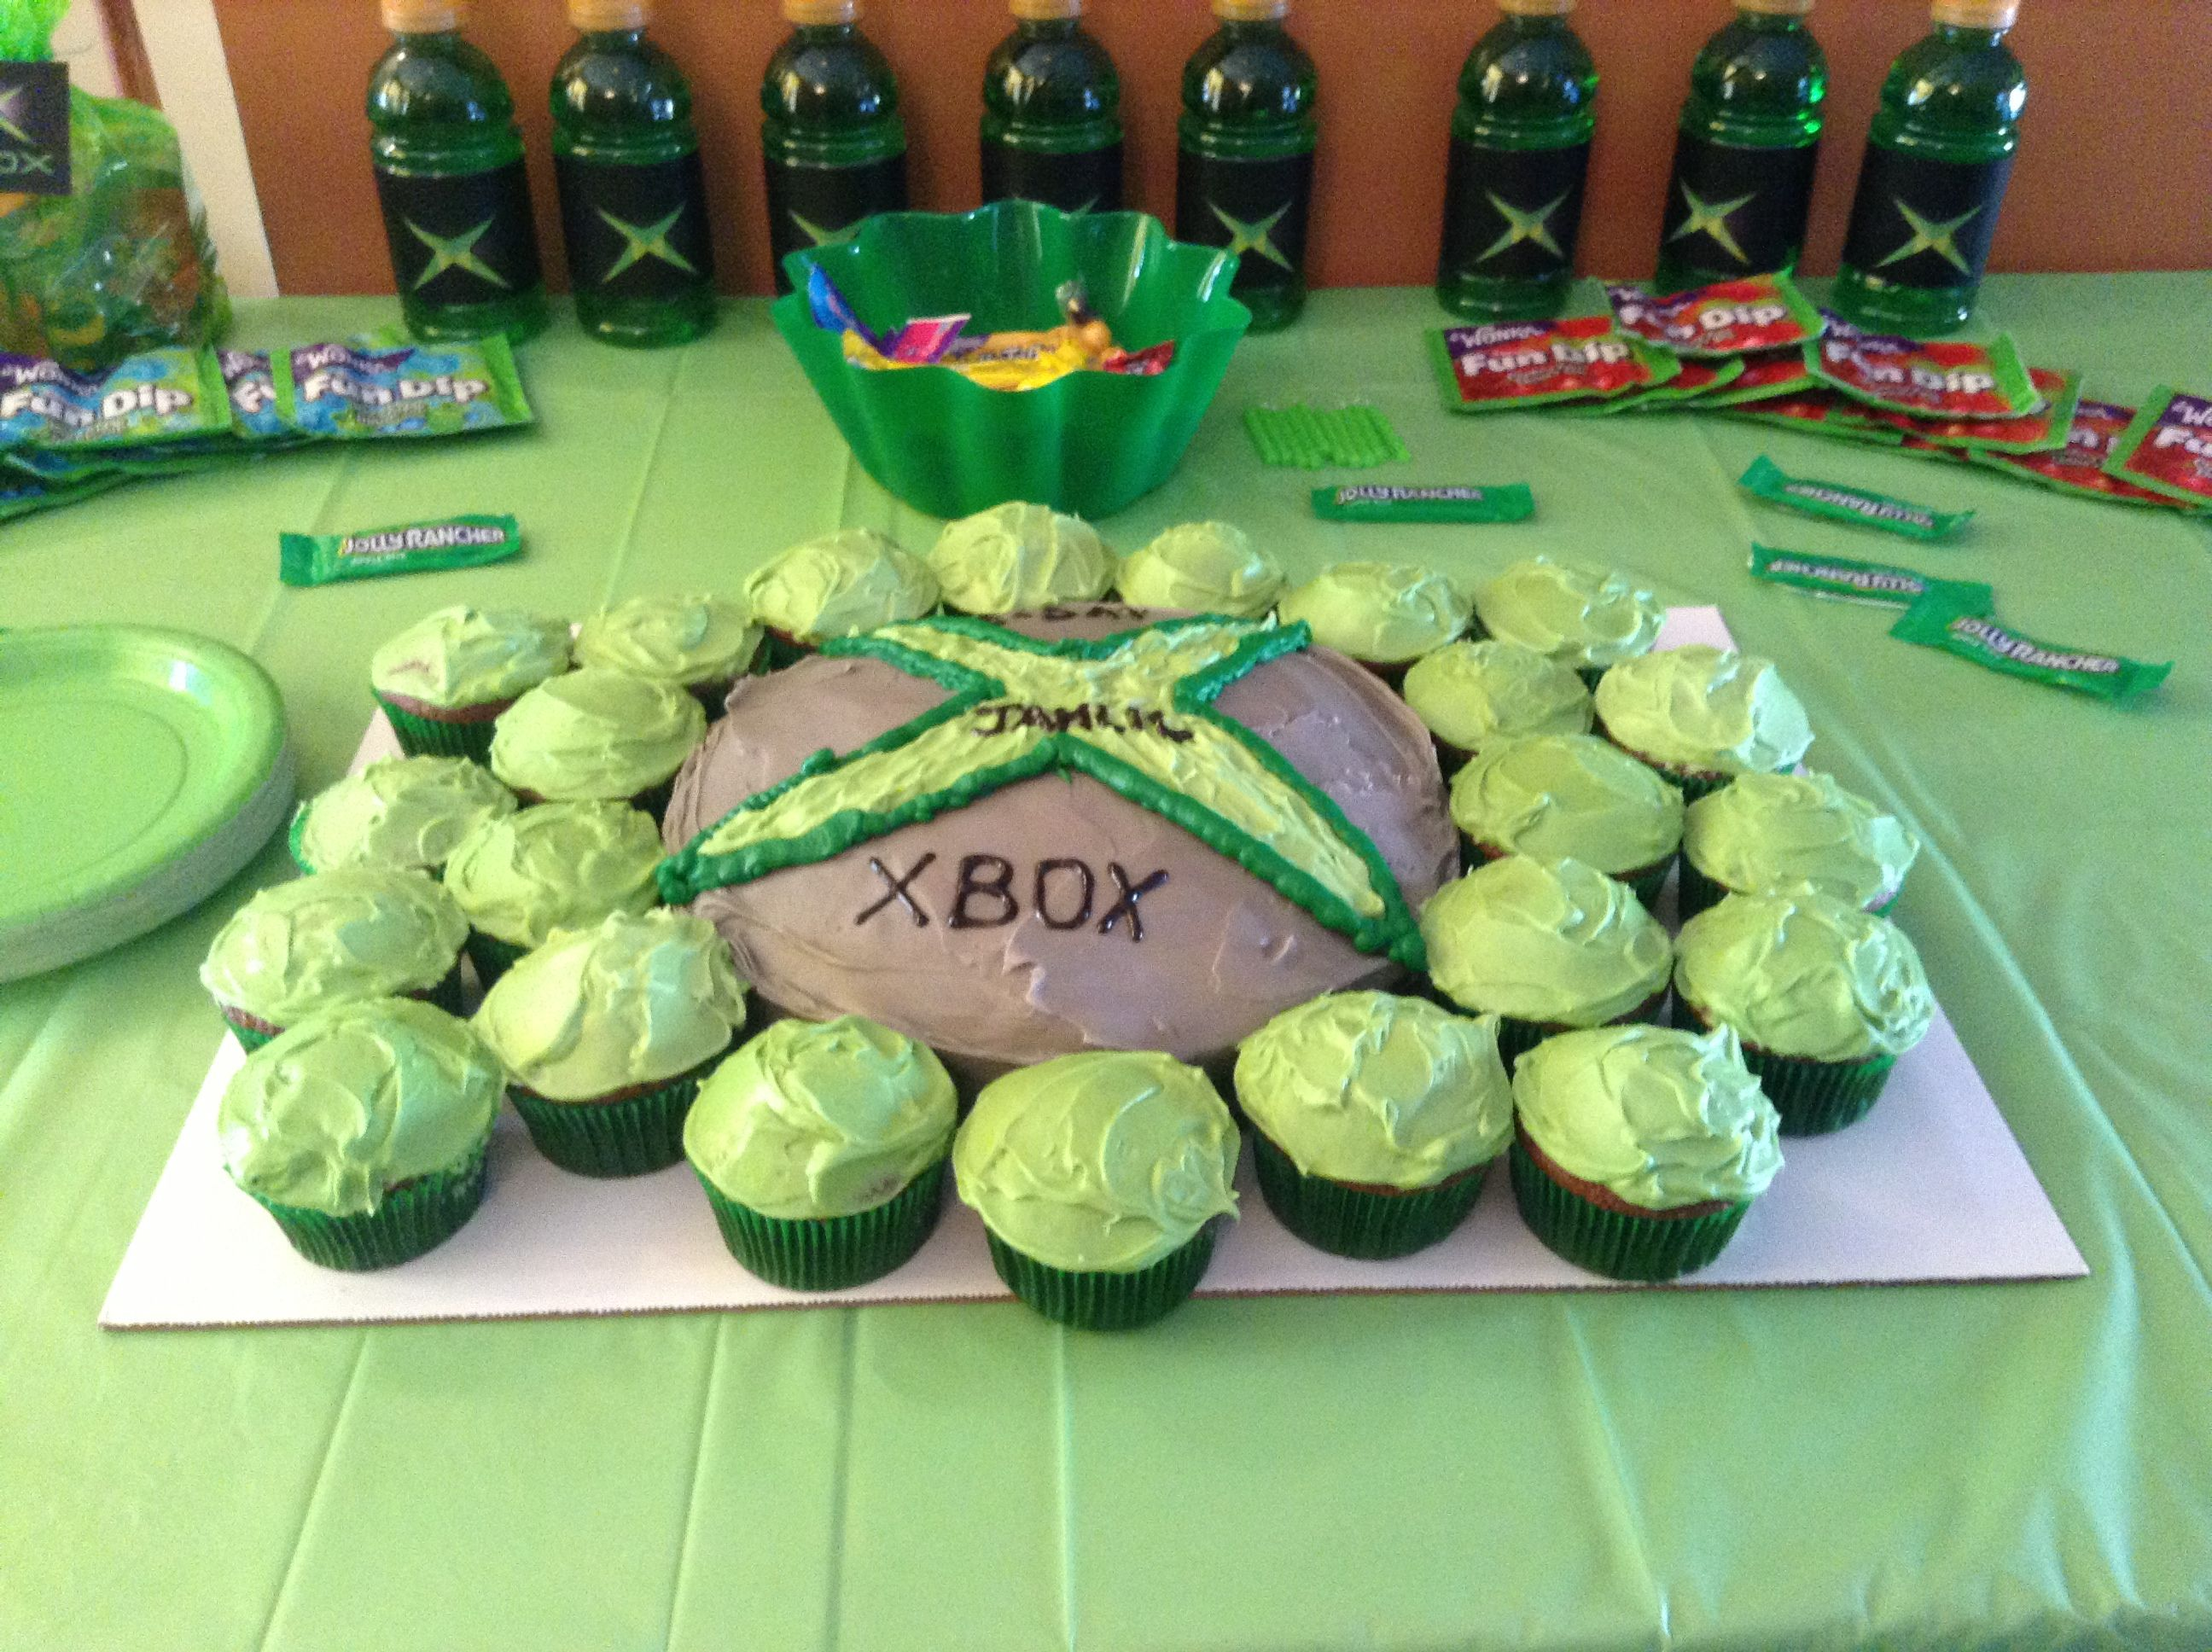 X box logo cake and cupcakes. Video game party. Video